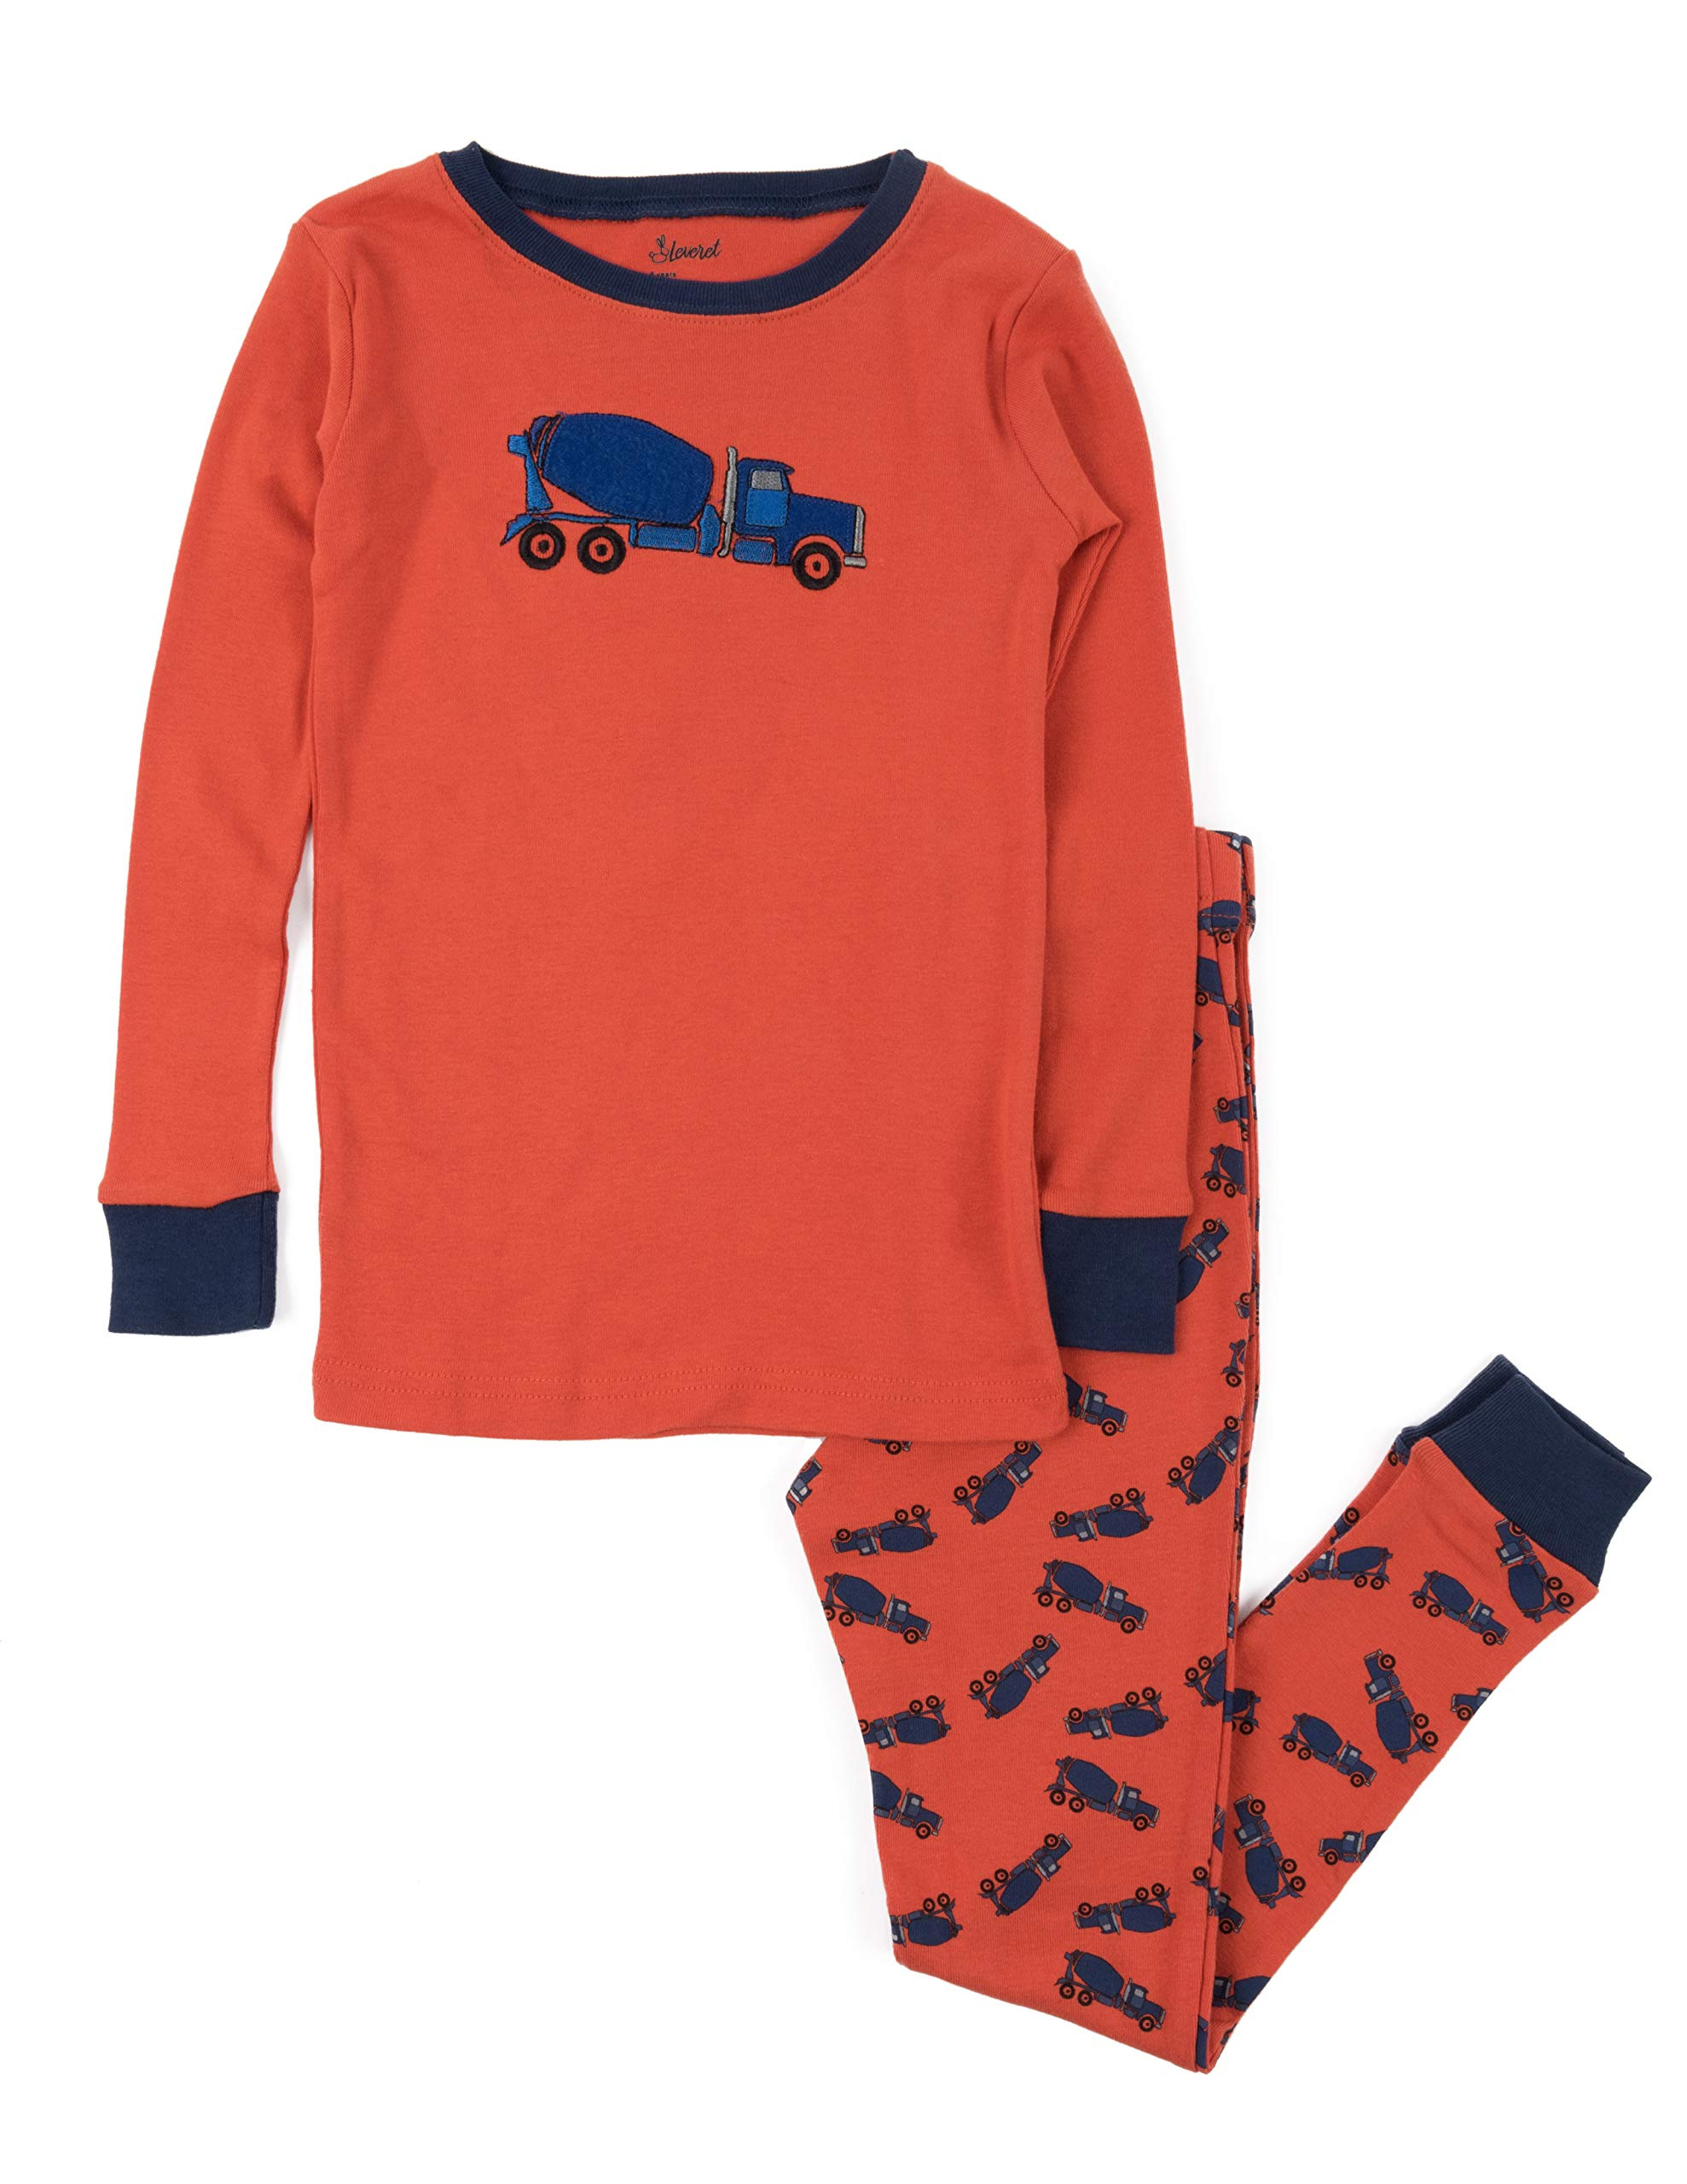 c3603a415 Galleon - Leveret Kids Pajamas Boys Girls 2 Piece Pjs Set 100 ...